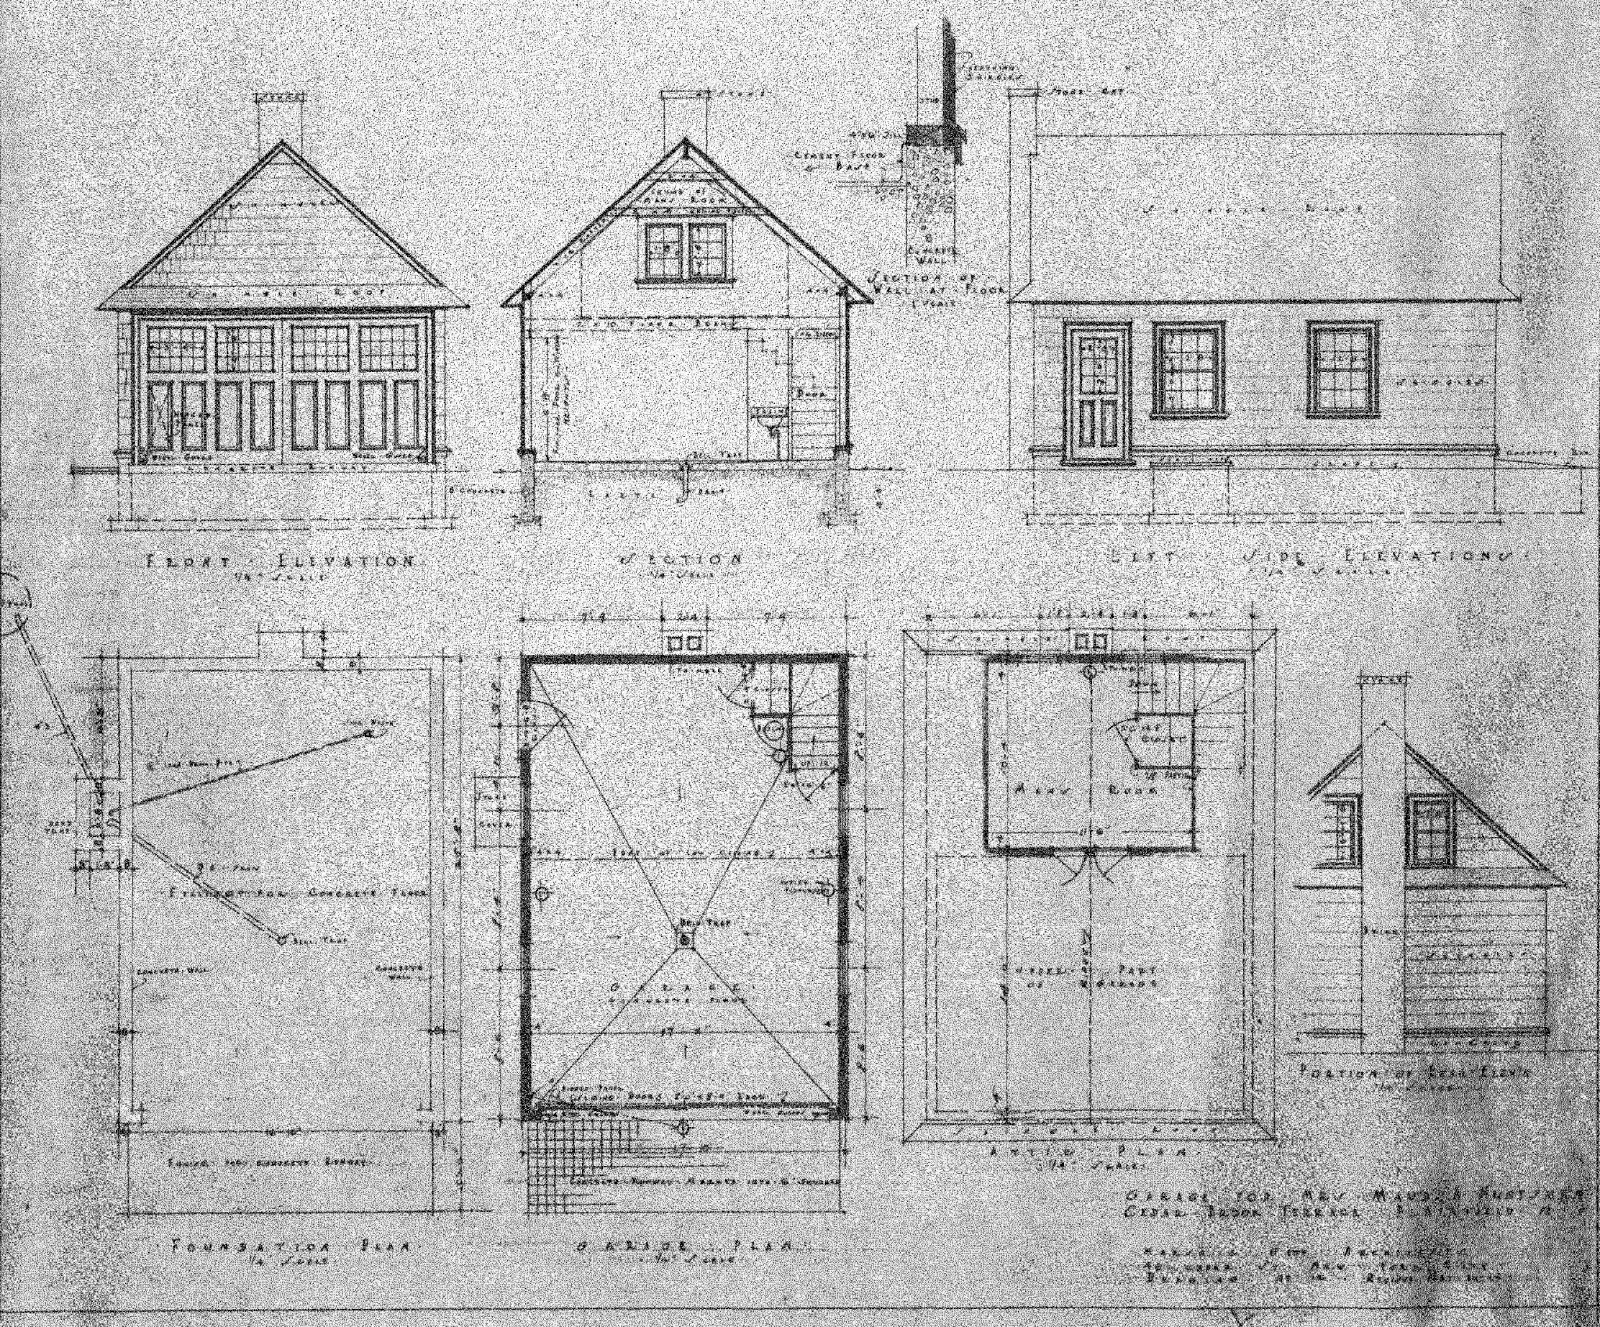 Once upon a house blueprint for a colonial revival garage original drawings for the two story garage at 920 cedar brook road the door in the side elevation top right first row opens into the back yard malvernweather Gallery